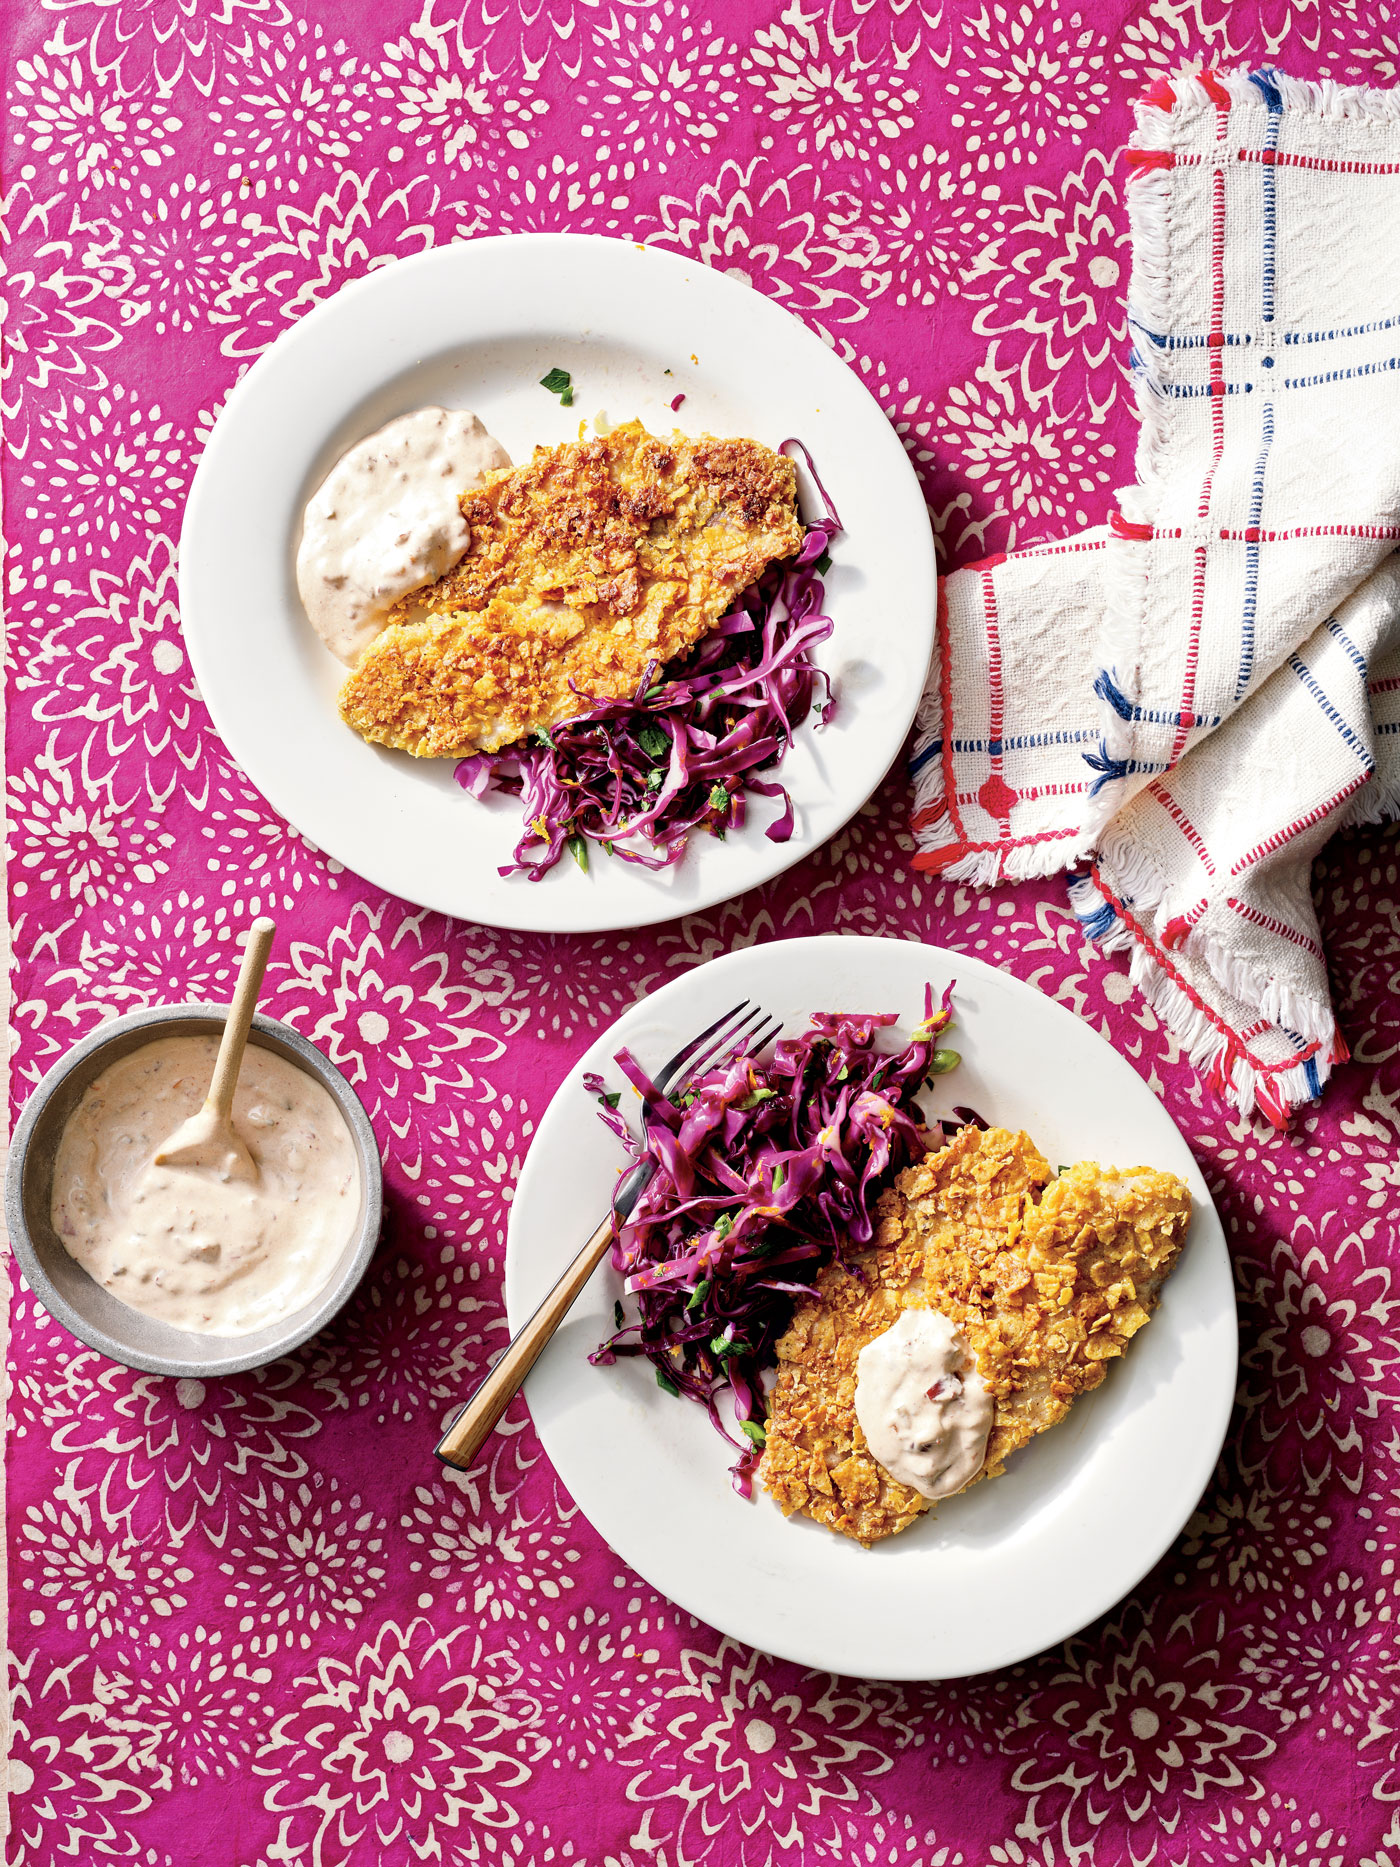 Tortilla-Crusted Tilapia with Citrus Slaw and Chipotle Tartar Sauce image